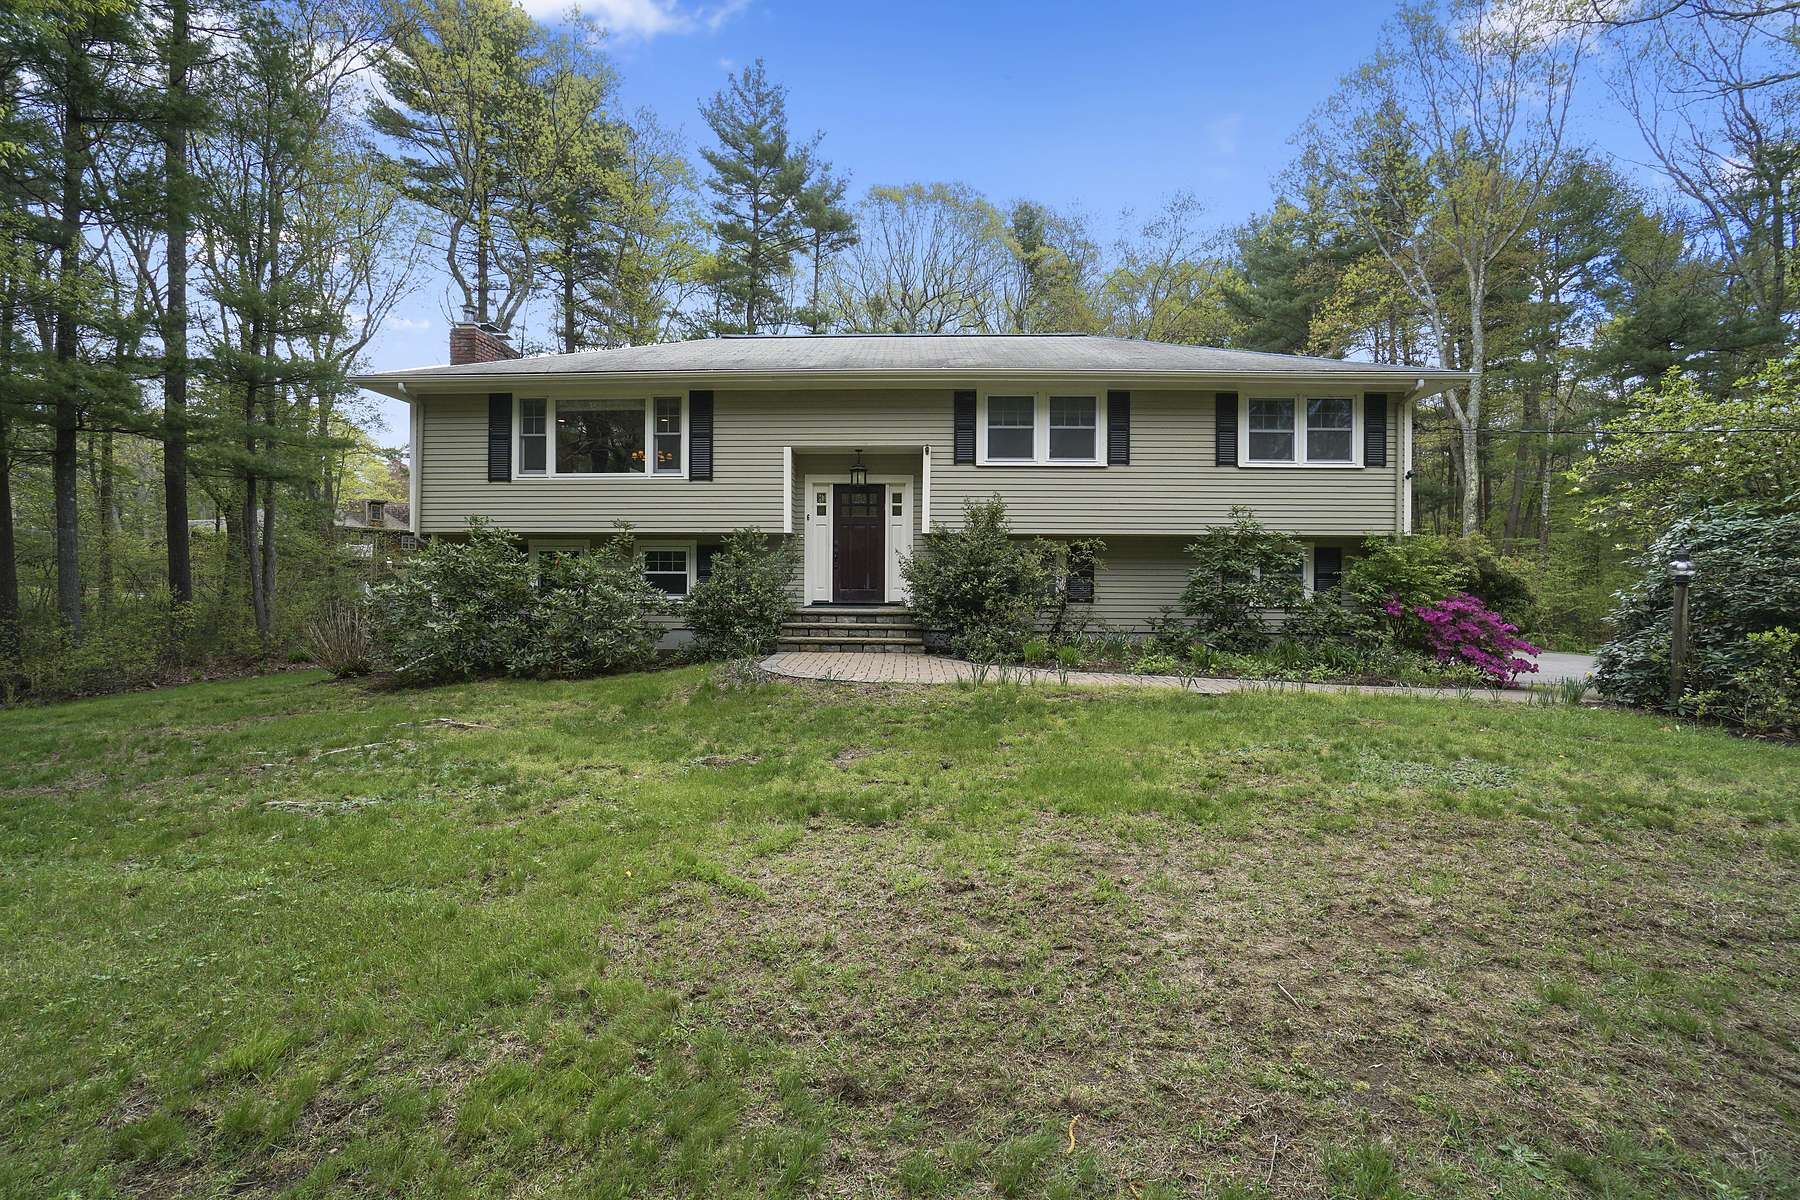 Single Family Homes for Active at 6 Troutbrook Rd, Dover 6 Troutbrook Road Dover, Massachusetts 02030 United States